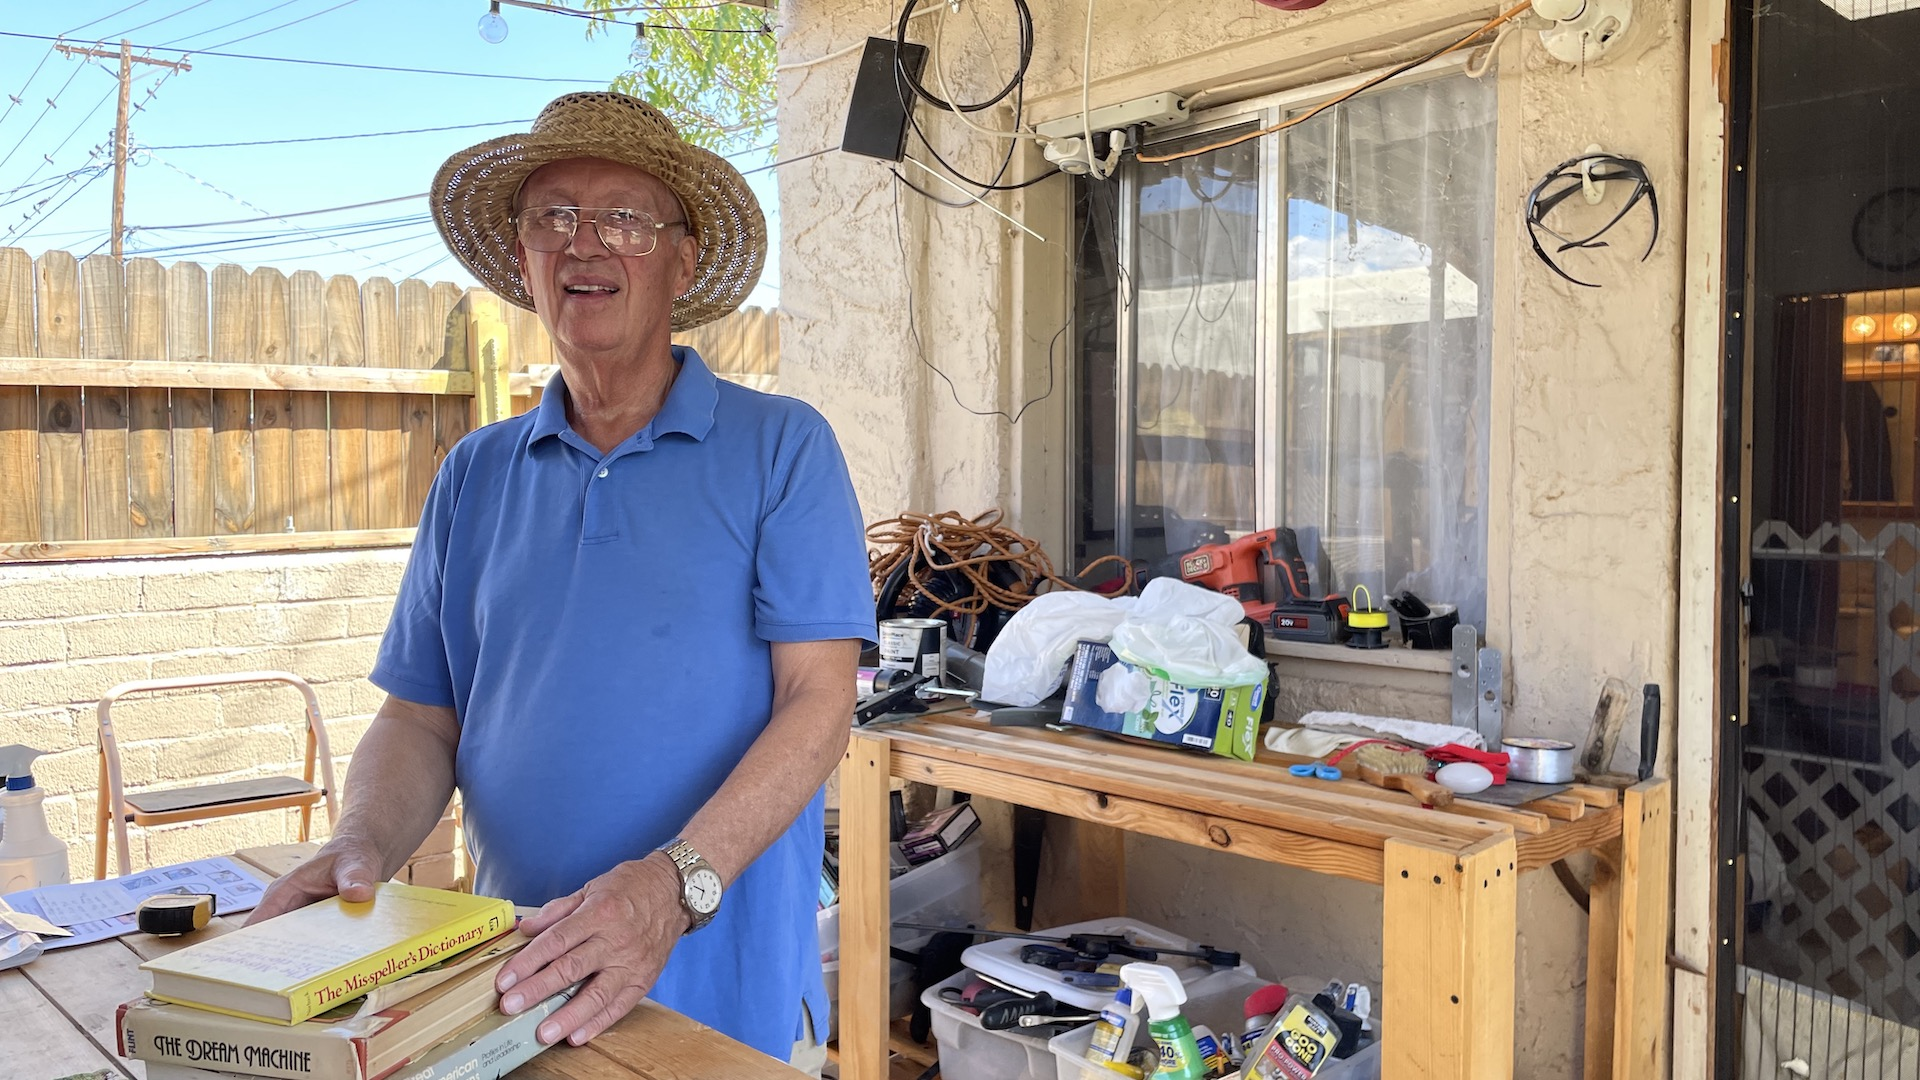 Peter Norbeck, 79, stands in front of his casita and woodworking desk on October 1st, 2021.